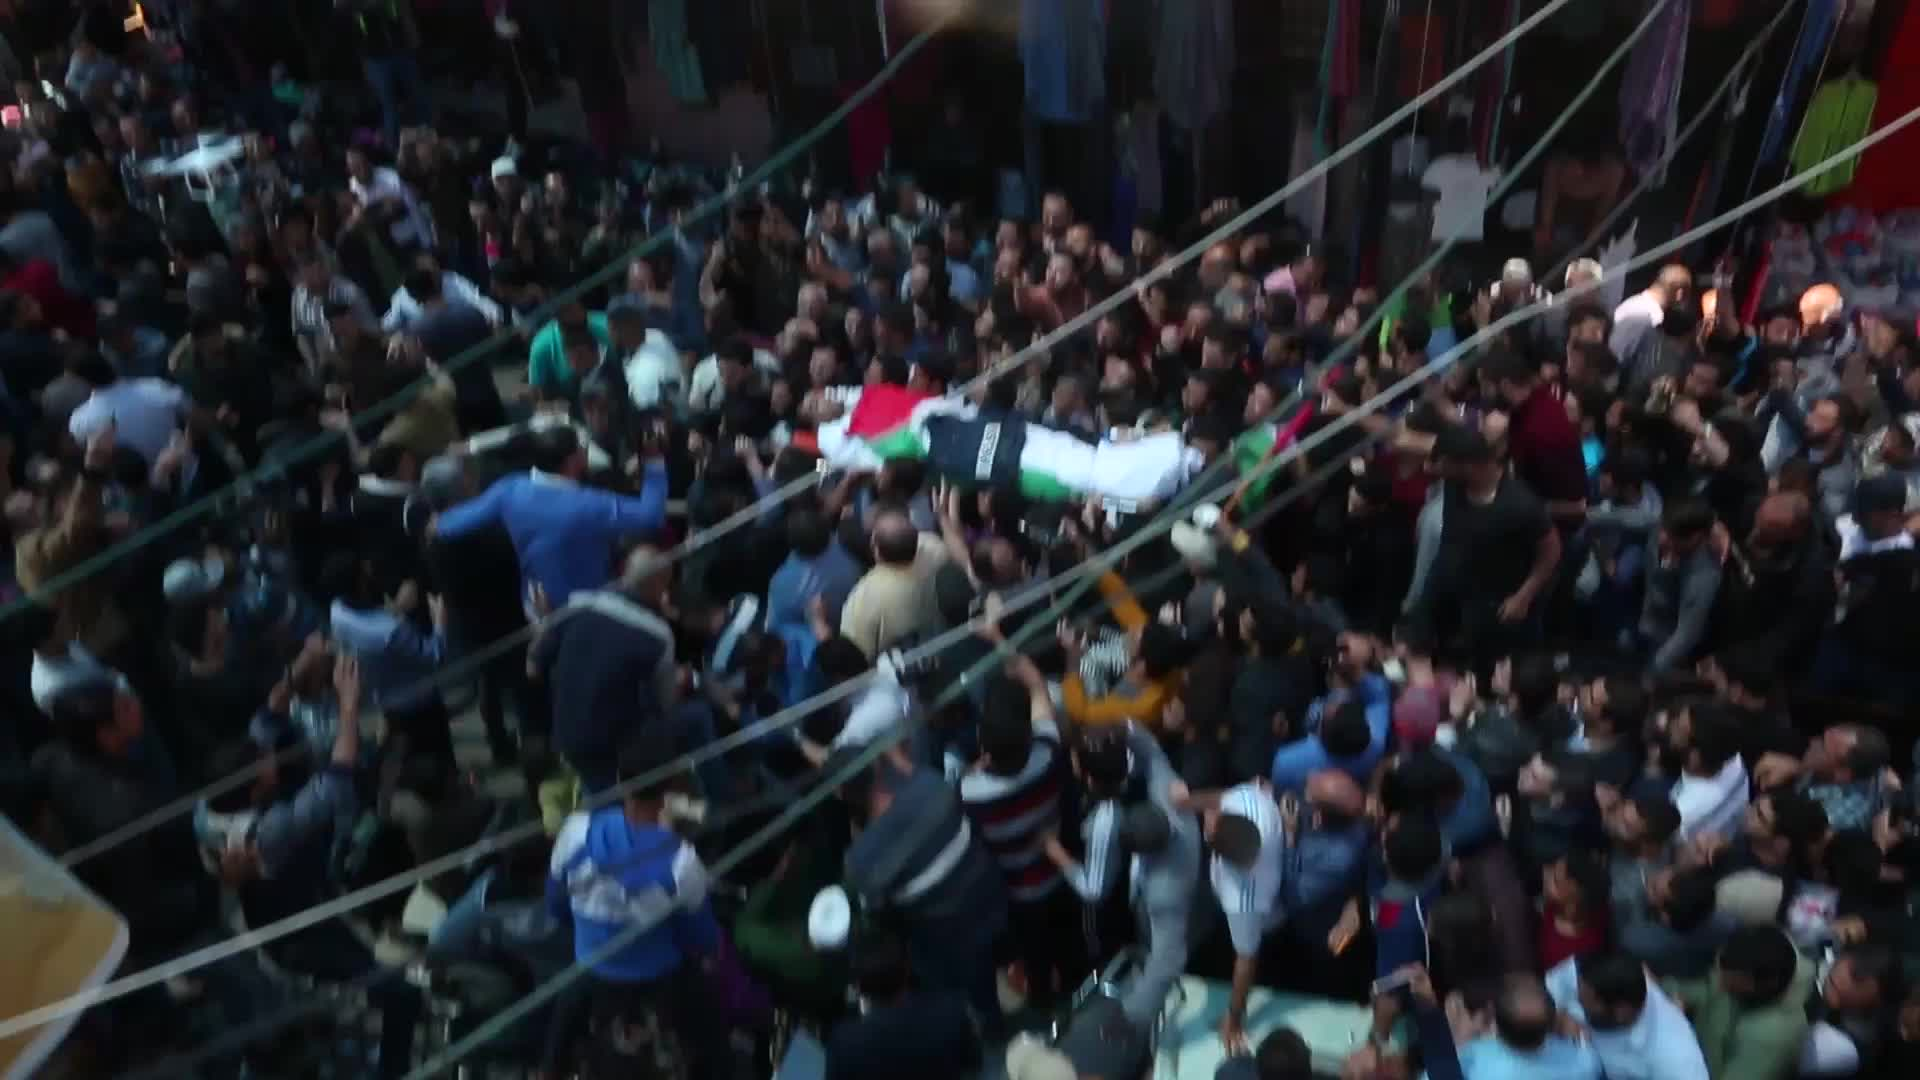 Gaza buries Palestinian journalist killed while covering mass border protest